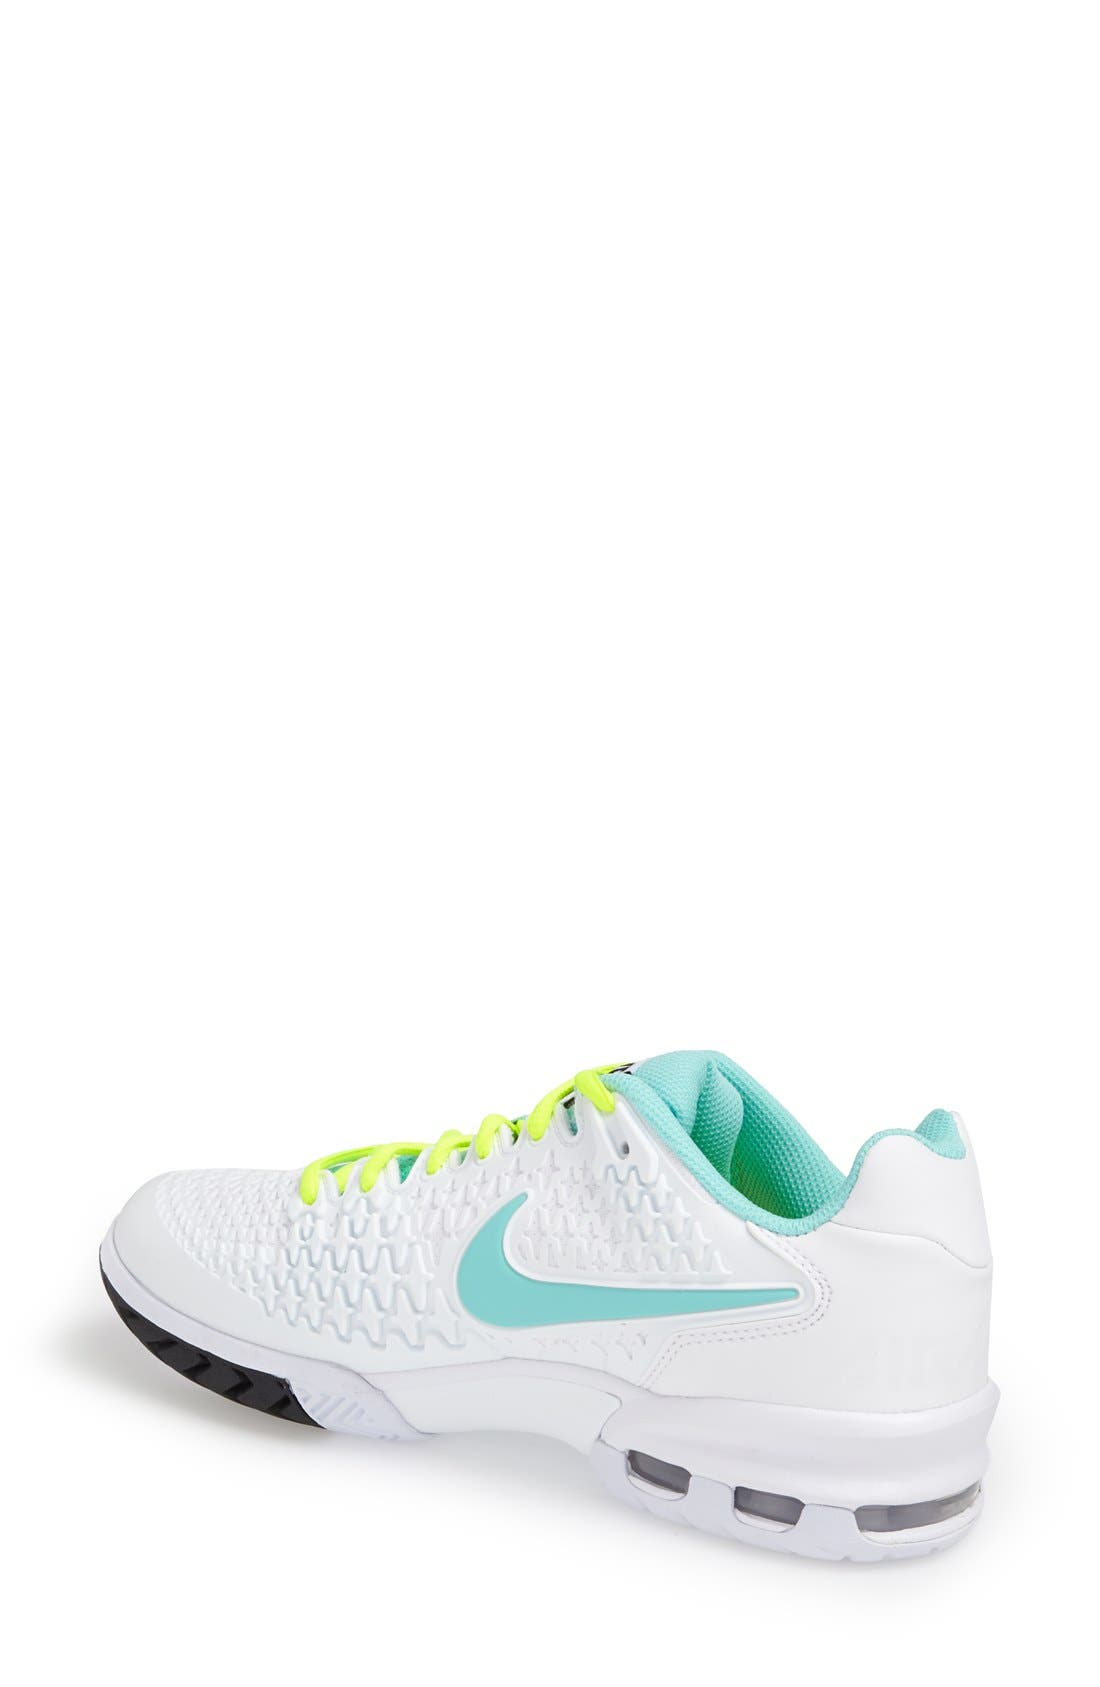 Alternate Image 2  - Nike 'Air Max Cage' Tennis Shoe (Women) (Regular Retail Price: $115.00)